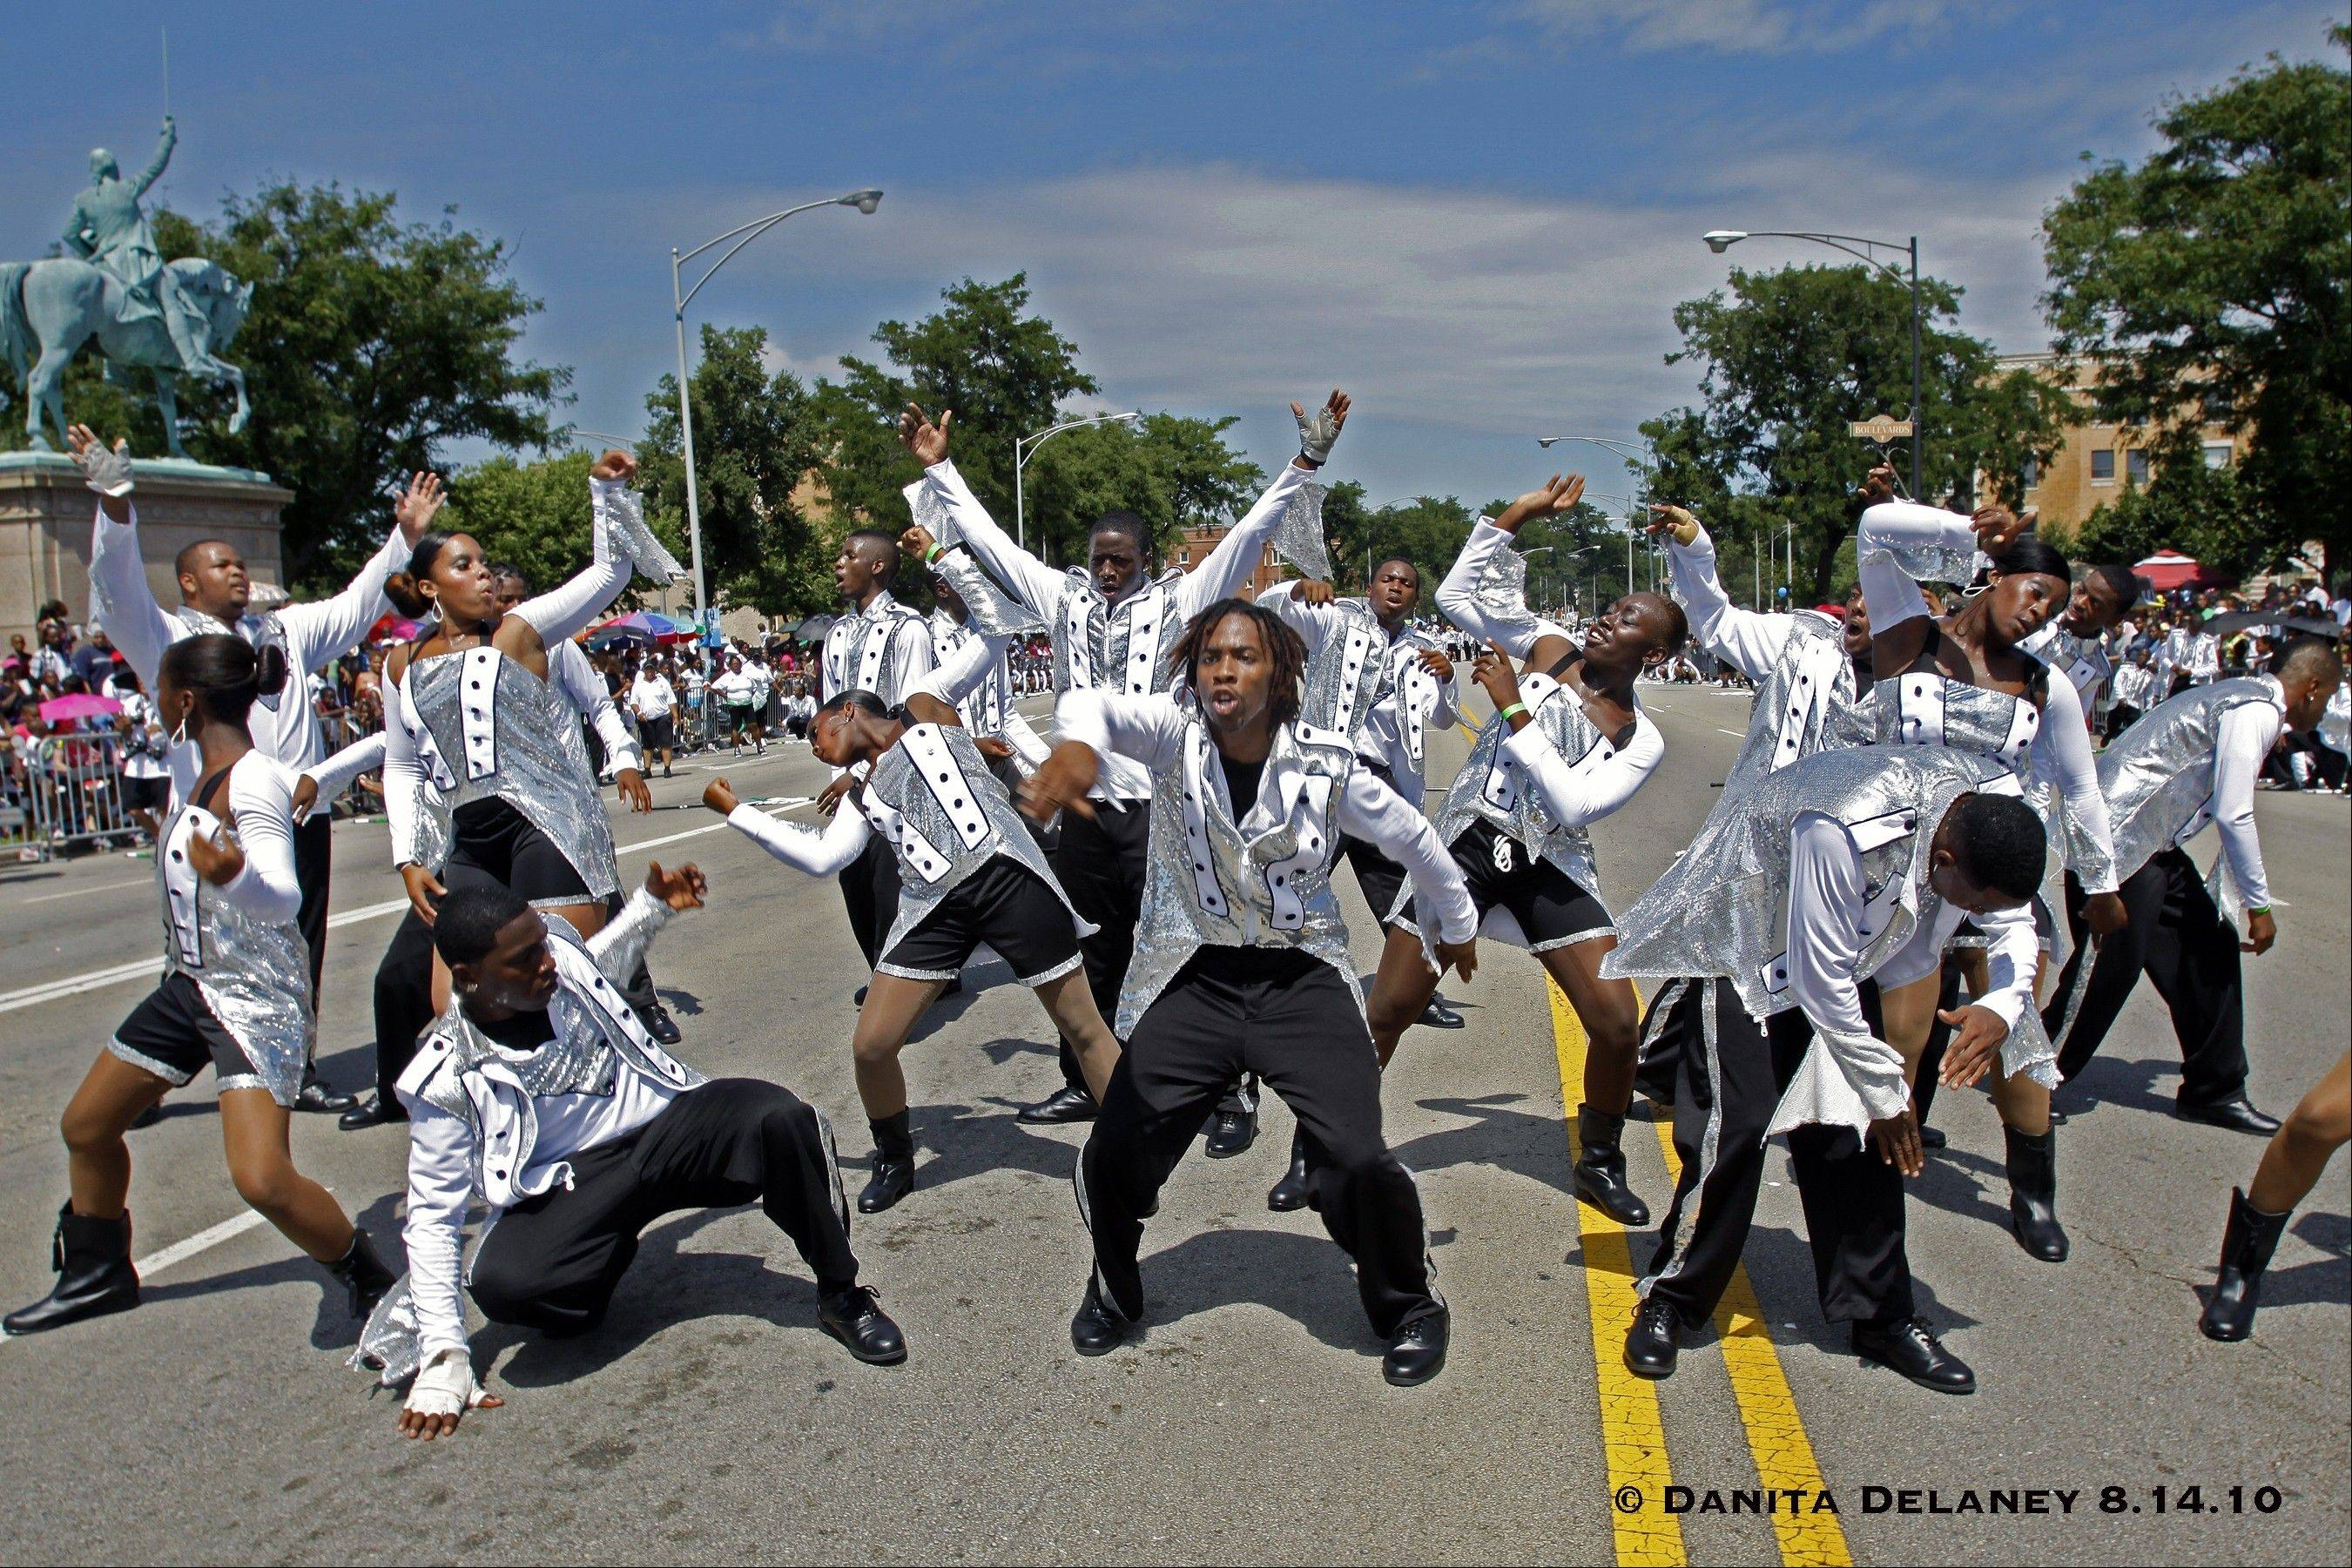 The Bud Billiken Parade returns to Chicago's South Side for its 82nd anniversary.